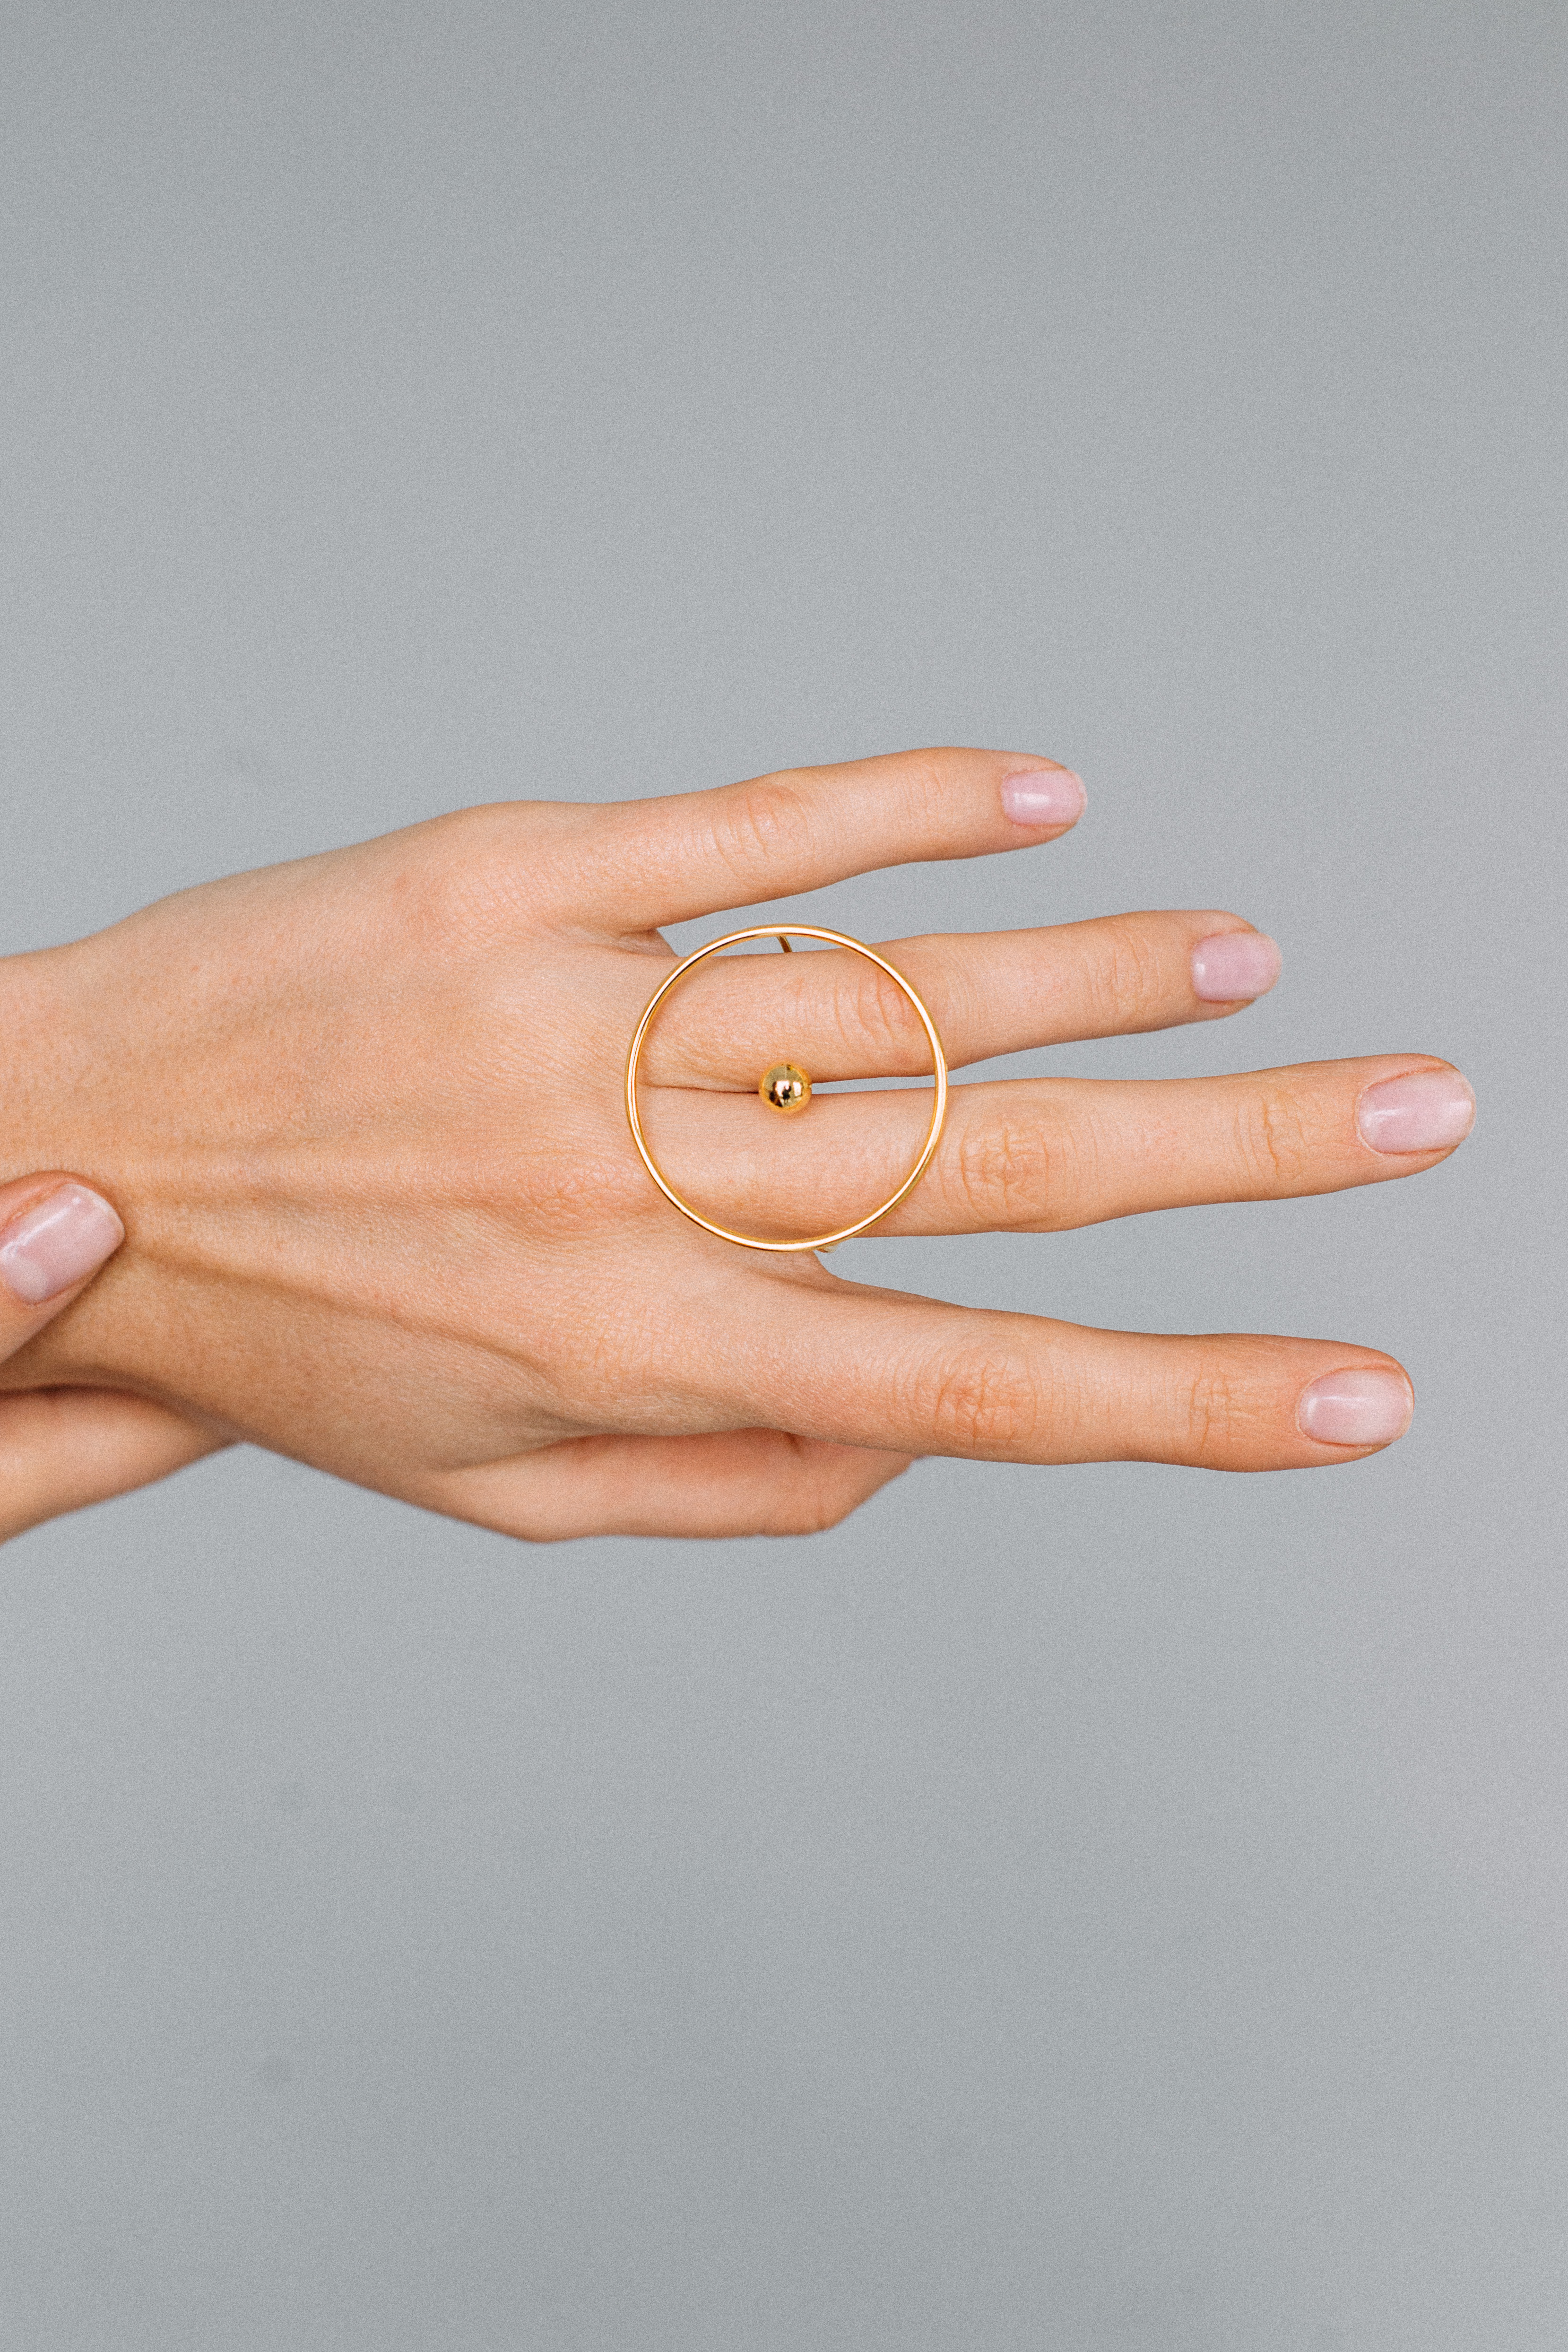 Planet Ring - Yellow Gold by Guzema Fine Jewellery on curated-crowd.com